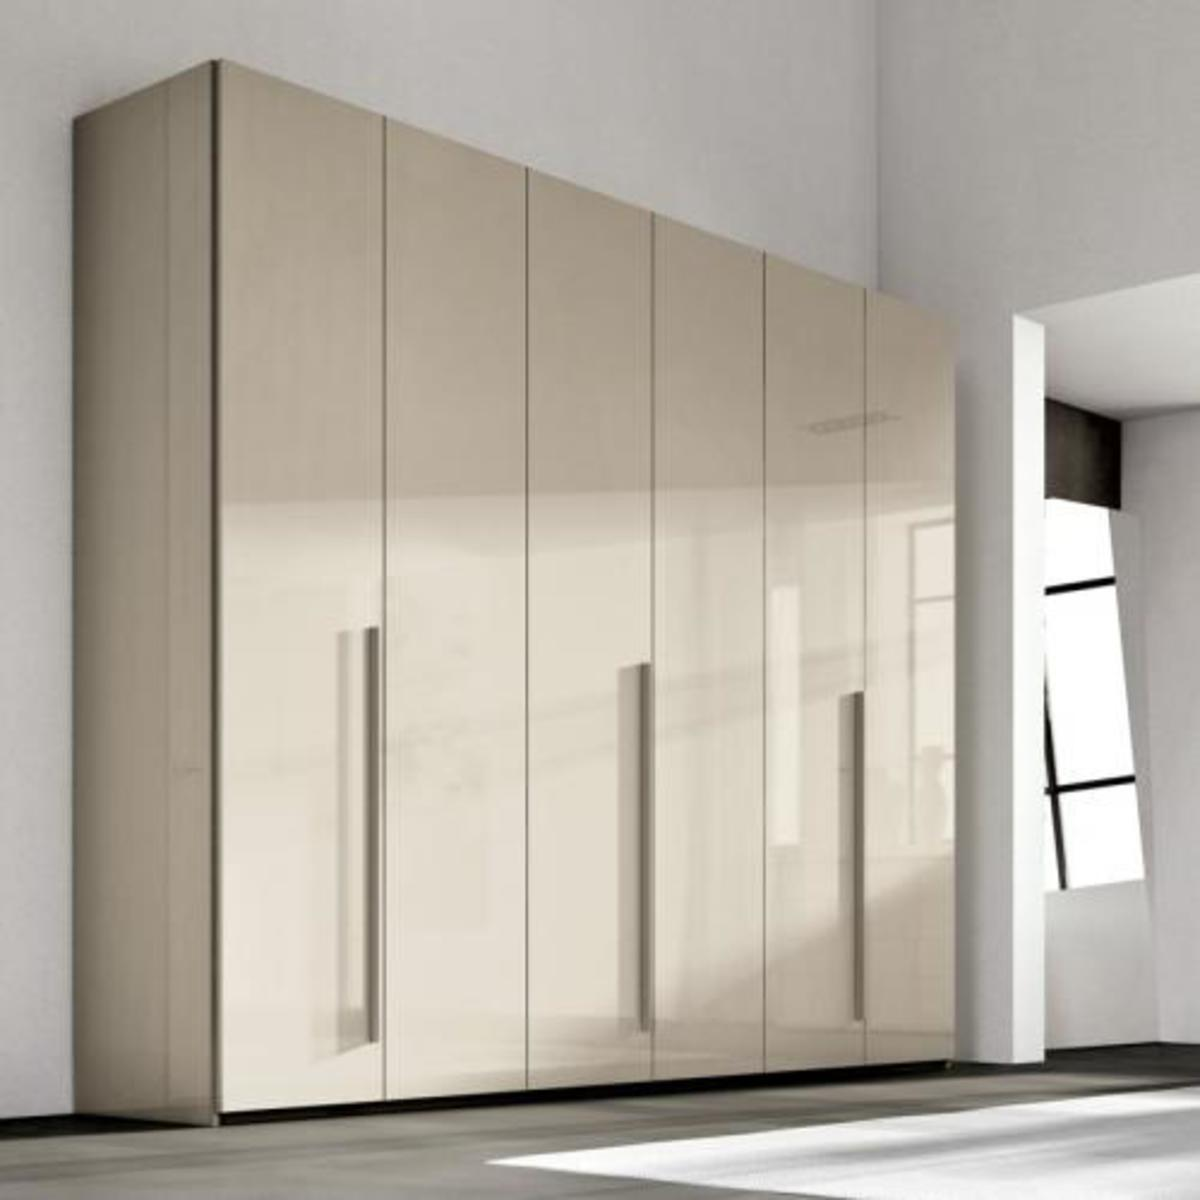 Bedroom Doors For Sale Inexpensive Italian Wardrobes White Glossy Wardrobes